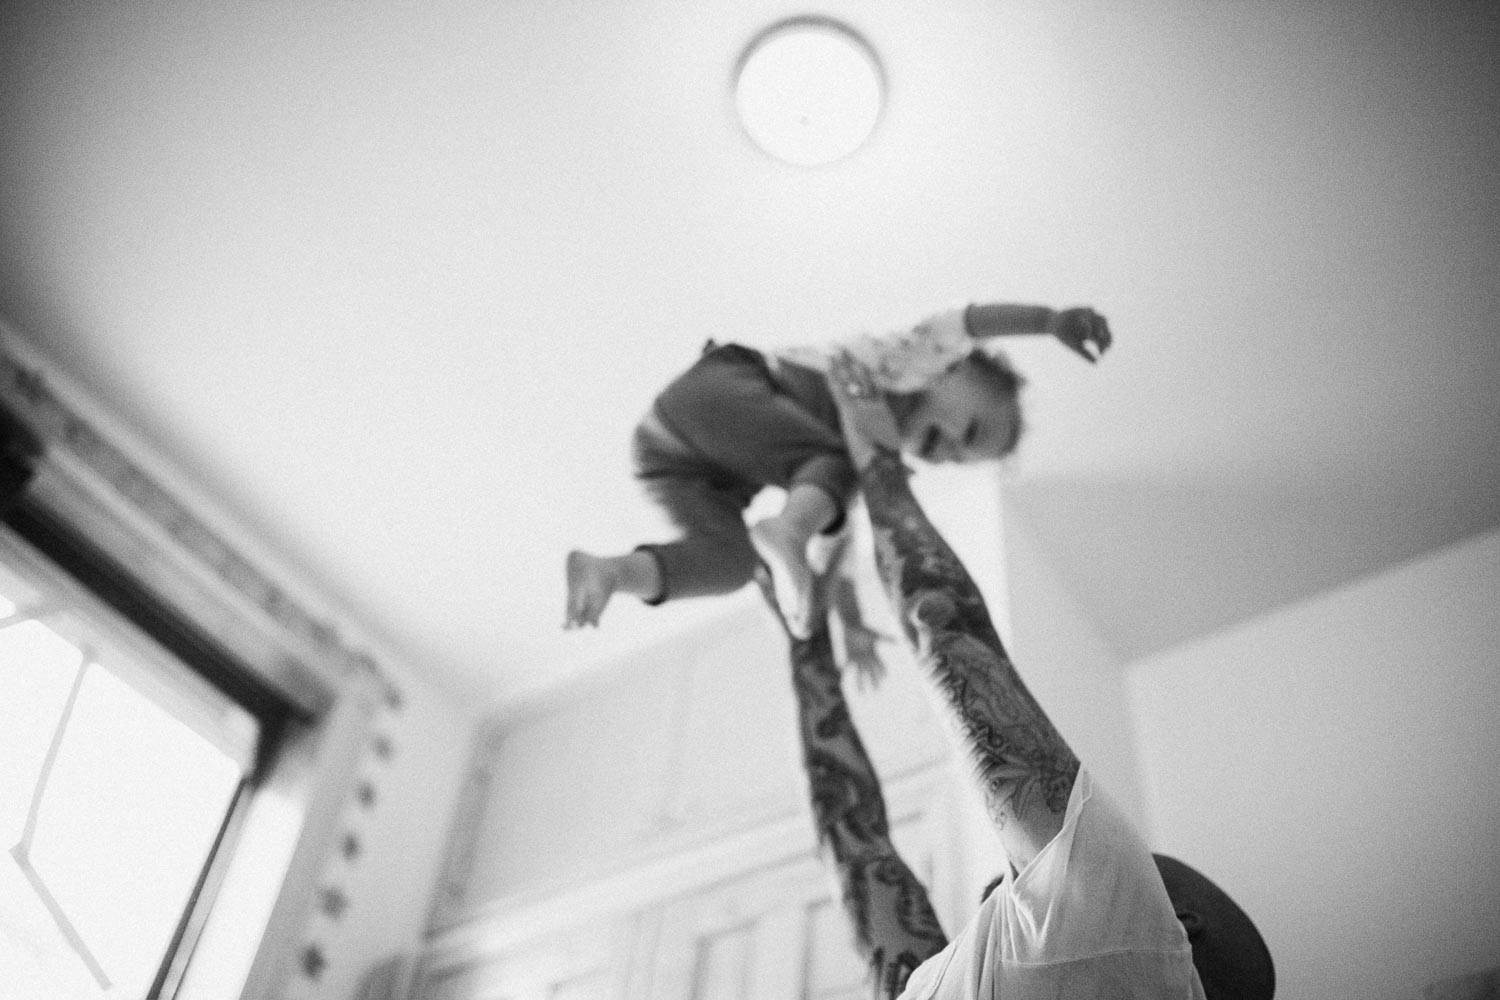 natural-and-artistic-black-and-white-playful-photo-father-tossing-child-in-air-slc-ut